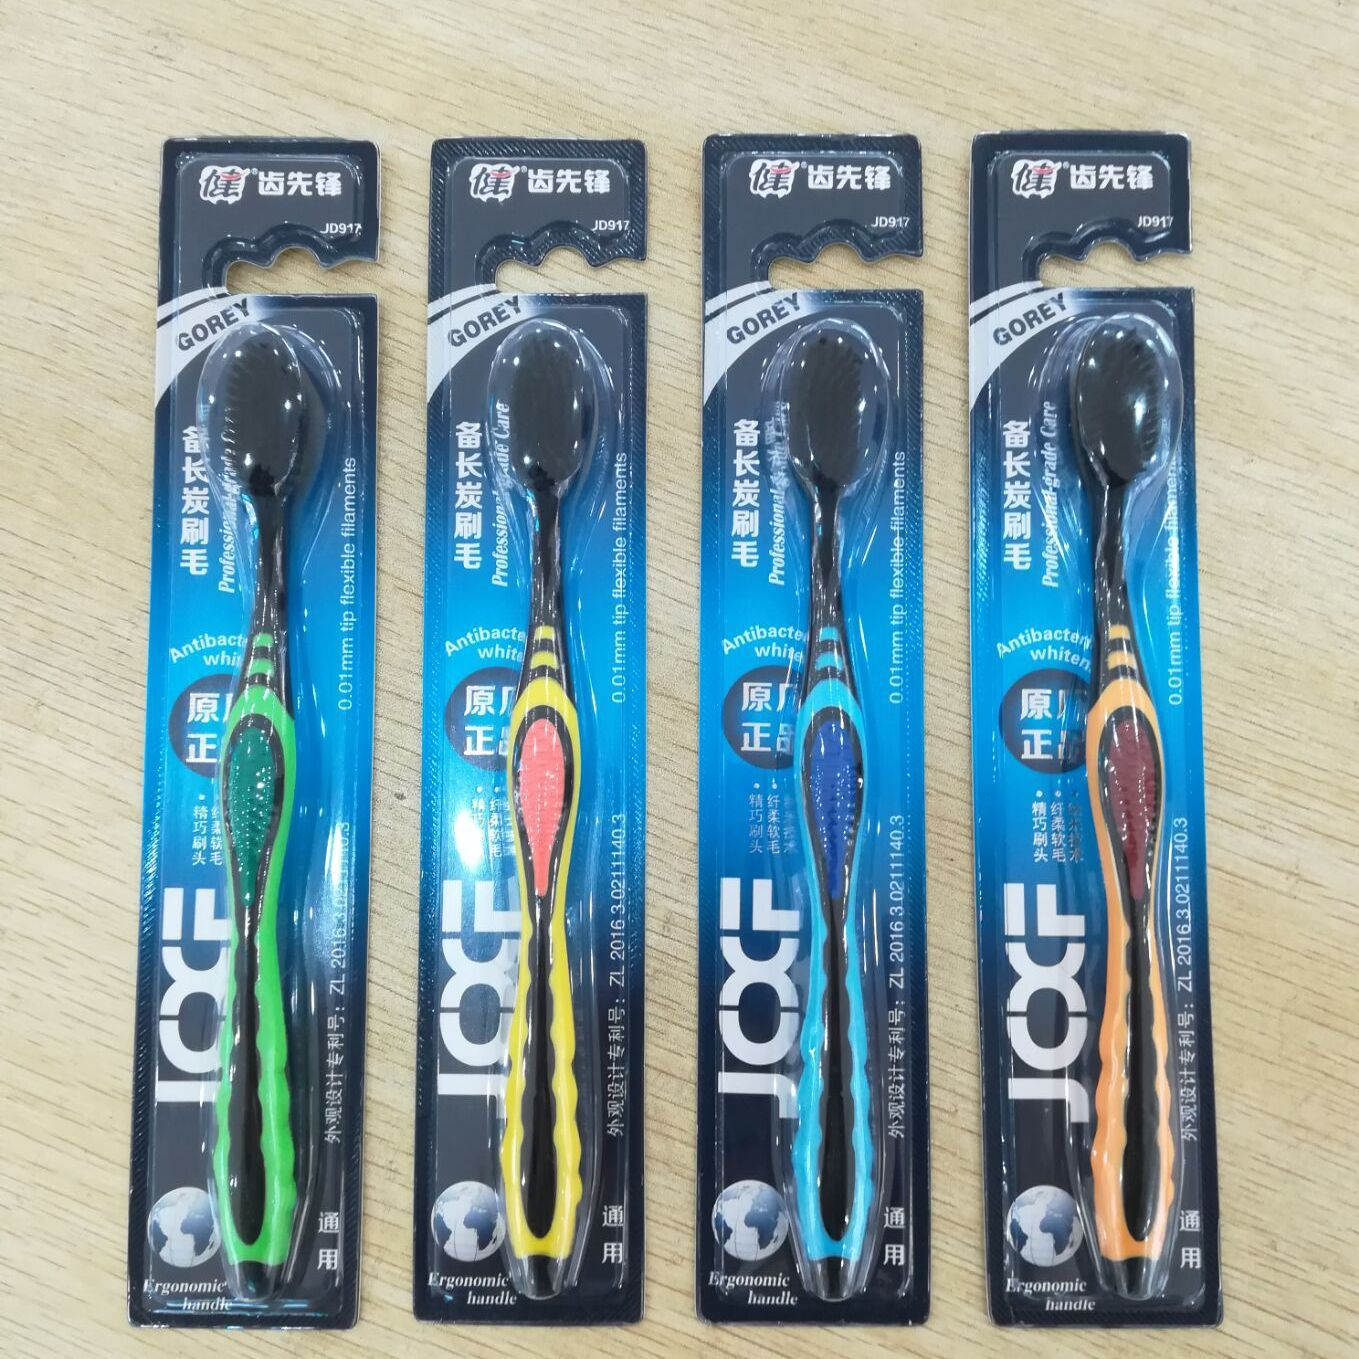 Kent Glister Pioneer Bamboo Charcoal Toothbrush Wholesale Soft Bristle Soft Silcone Big Head Adult ya shuan Manufacturers Direct image